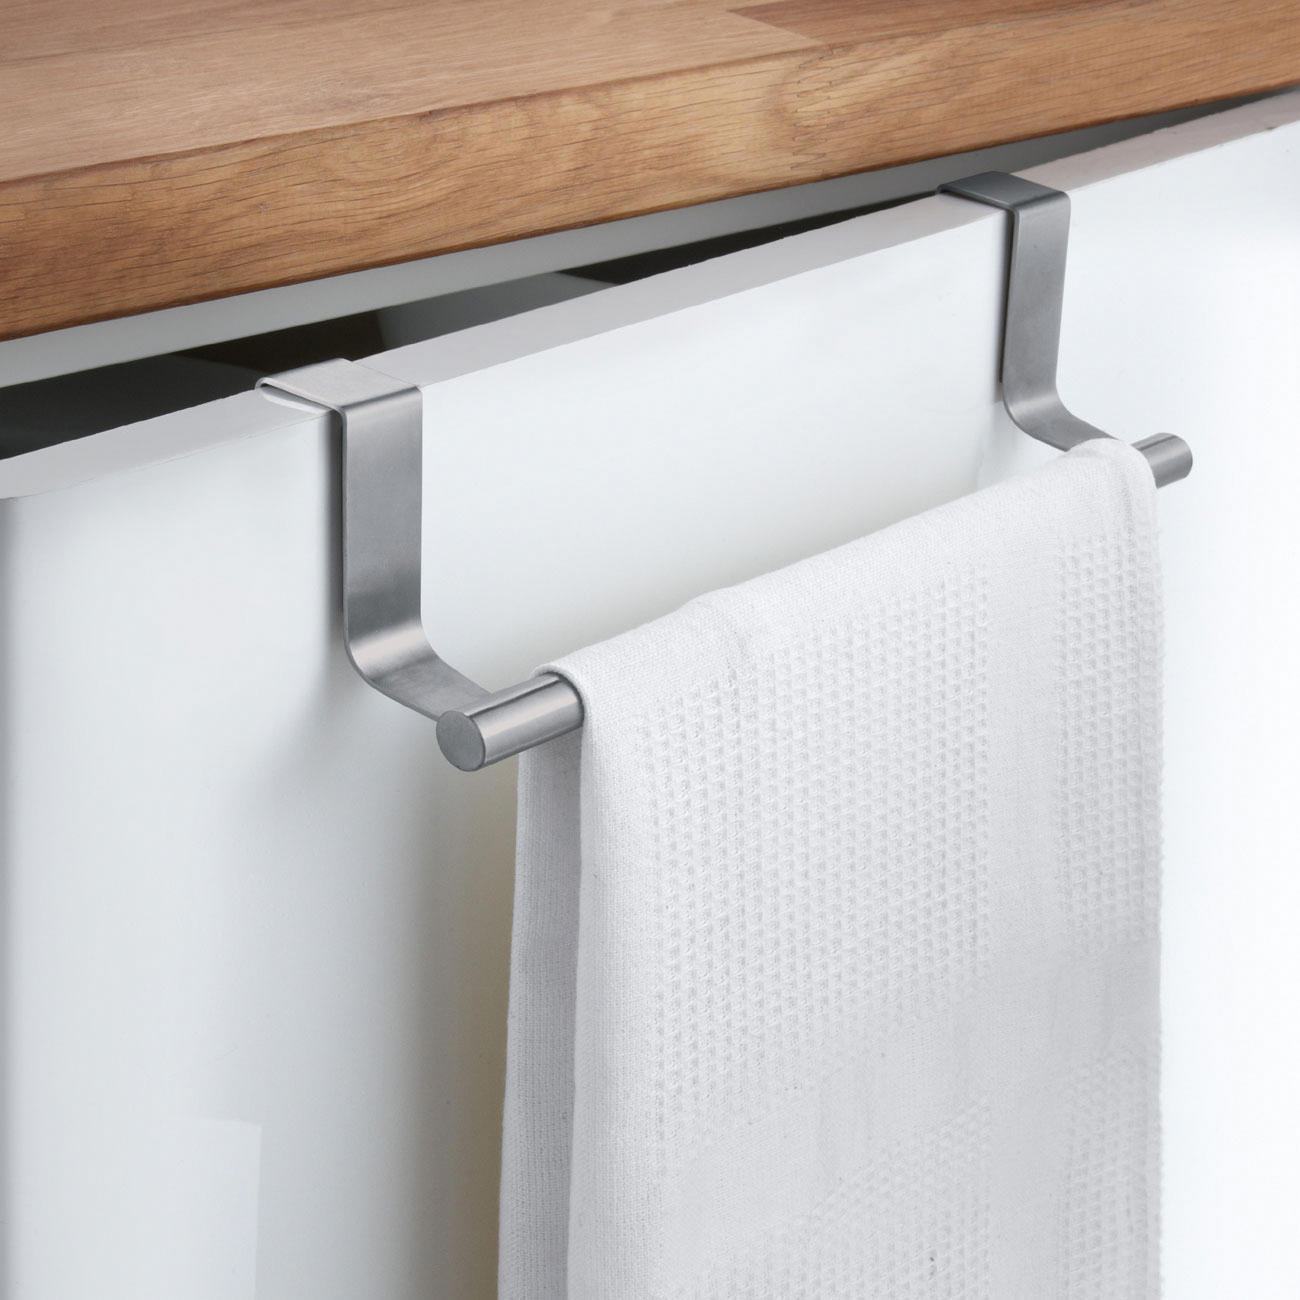 Handdoek Rek Keuken : Over the Door Towel Rack